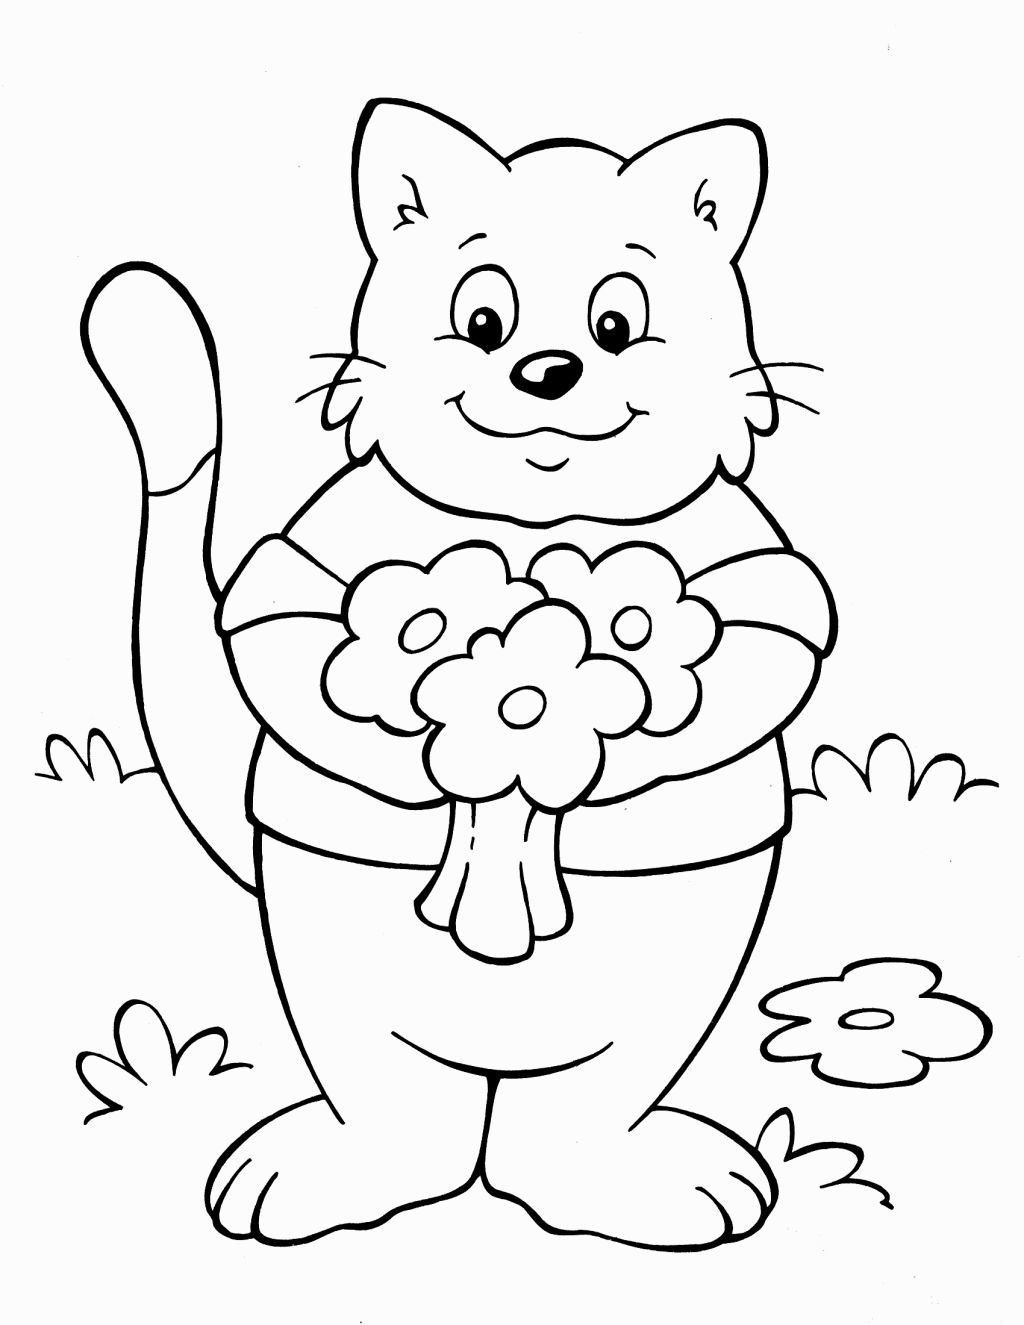 Make Your Own Coloring Pages  Crayola Coloring Pages Make Your Own – Coloring Pages